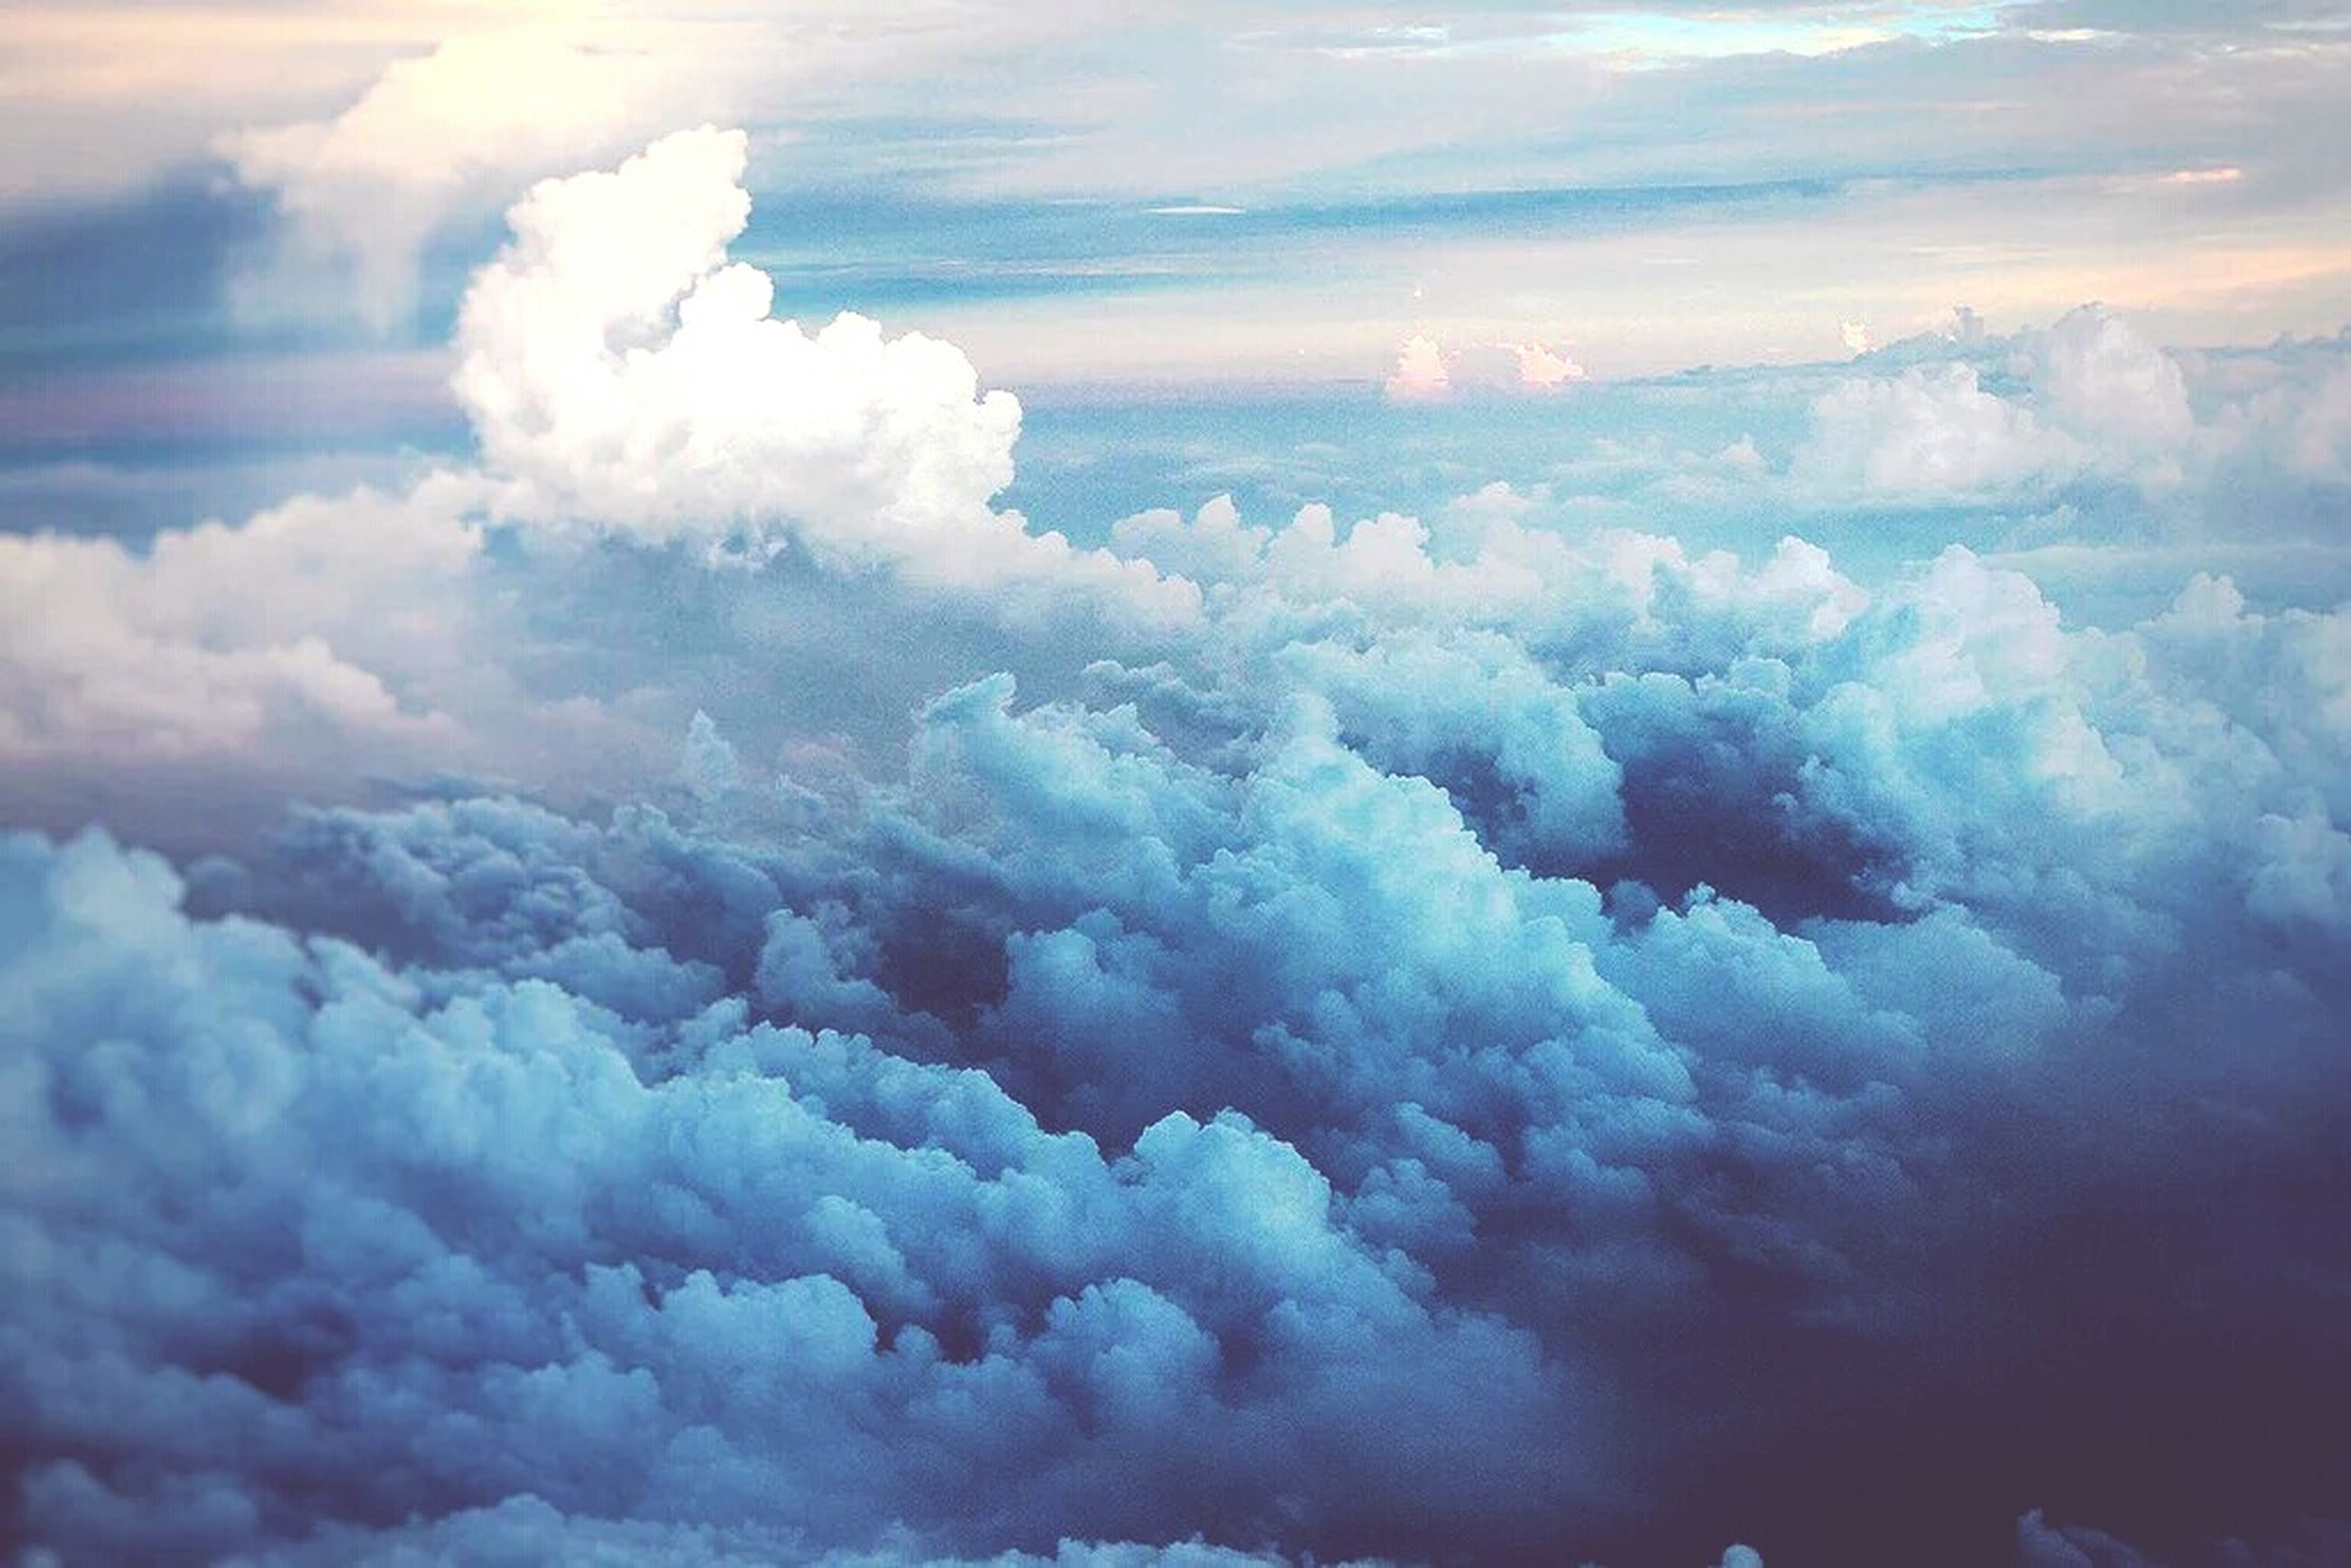 scenics, beauty in nature, cloud - sky, sky, nature, weather, tranquil scene, tranquility, cloudy, cloudscape, white color, idyllic, majestic, cloud, aerial view, no people, sky only, outdoors, cold temperature, day